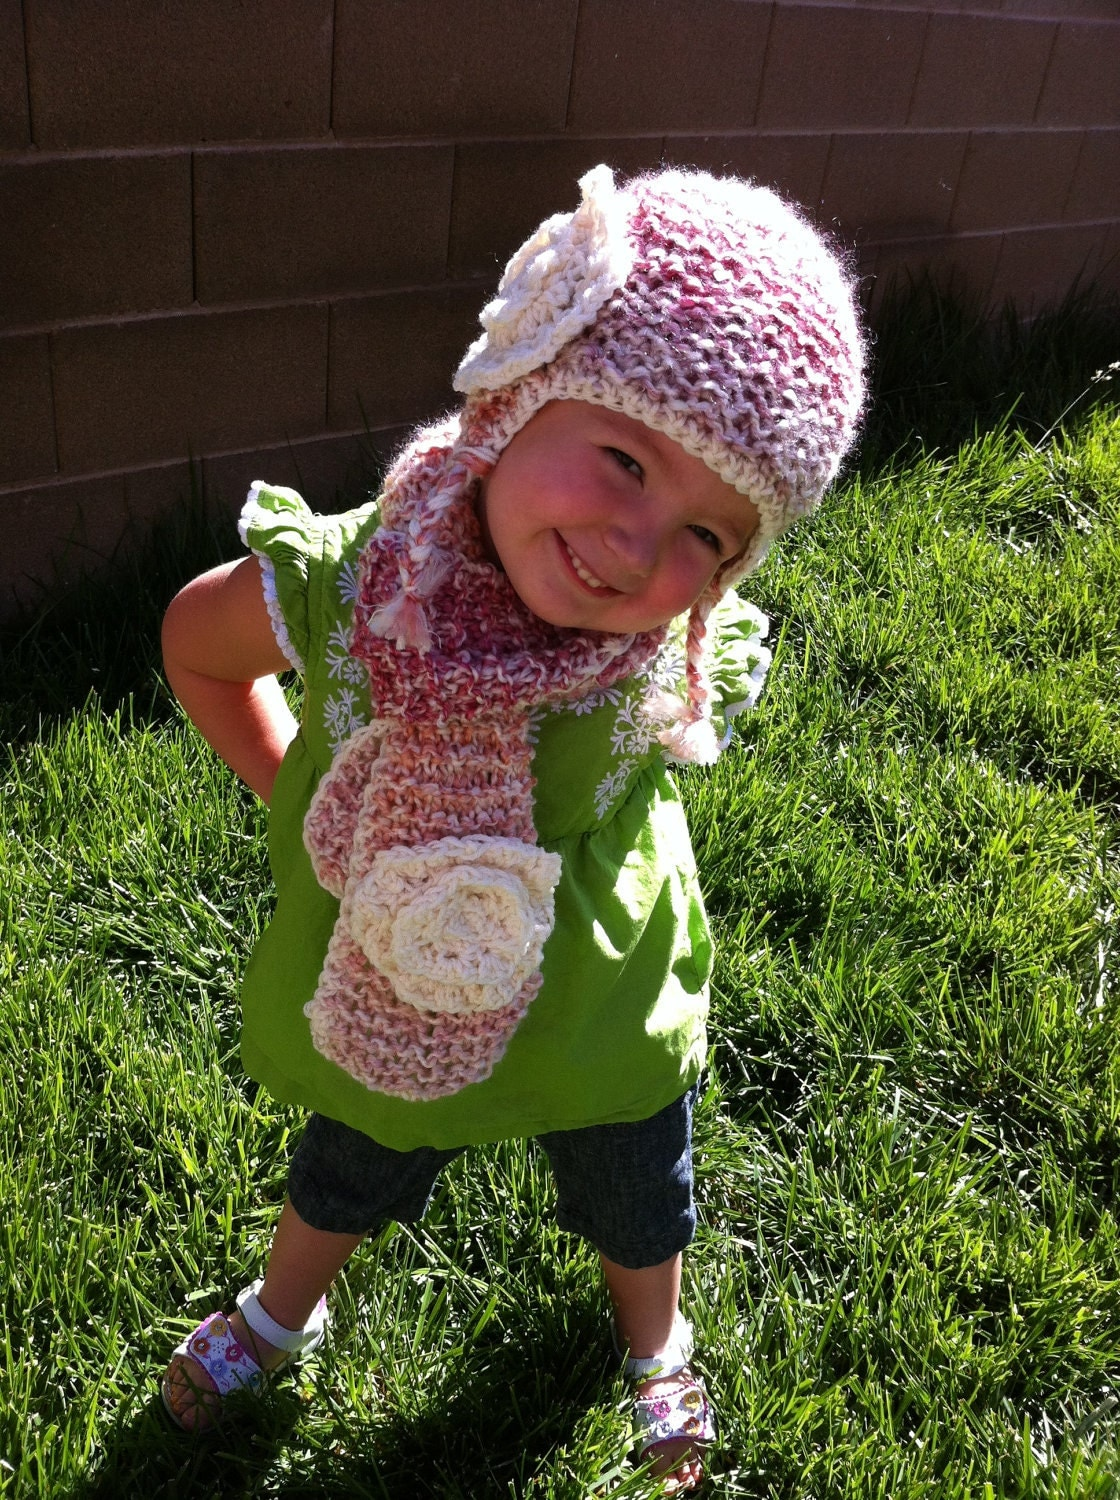 Children's Hand knitted hat and scarf with large crochet flower - Color shown is Parfait